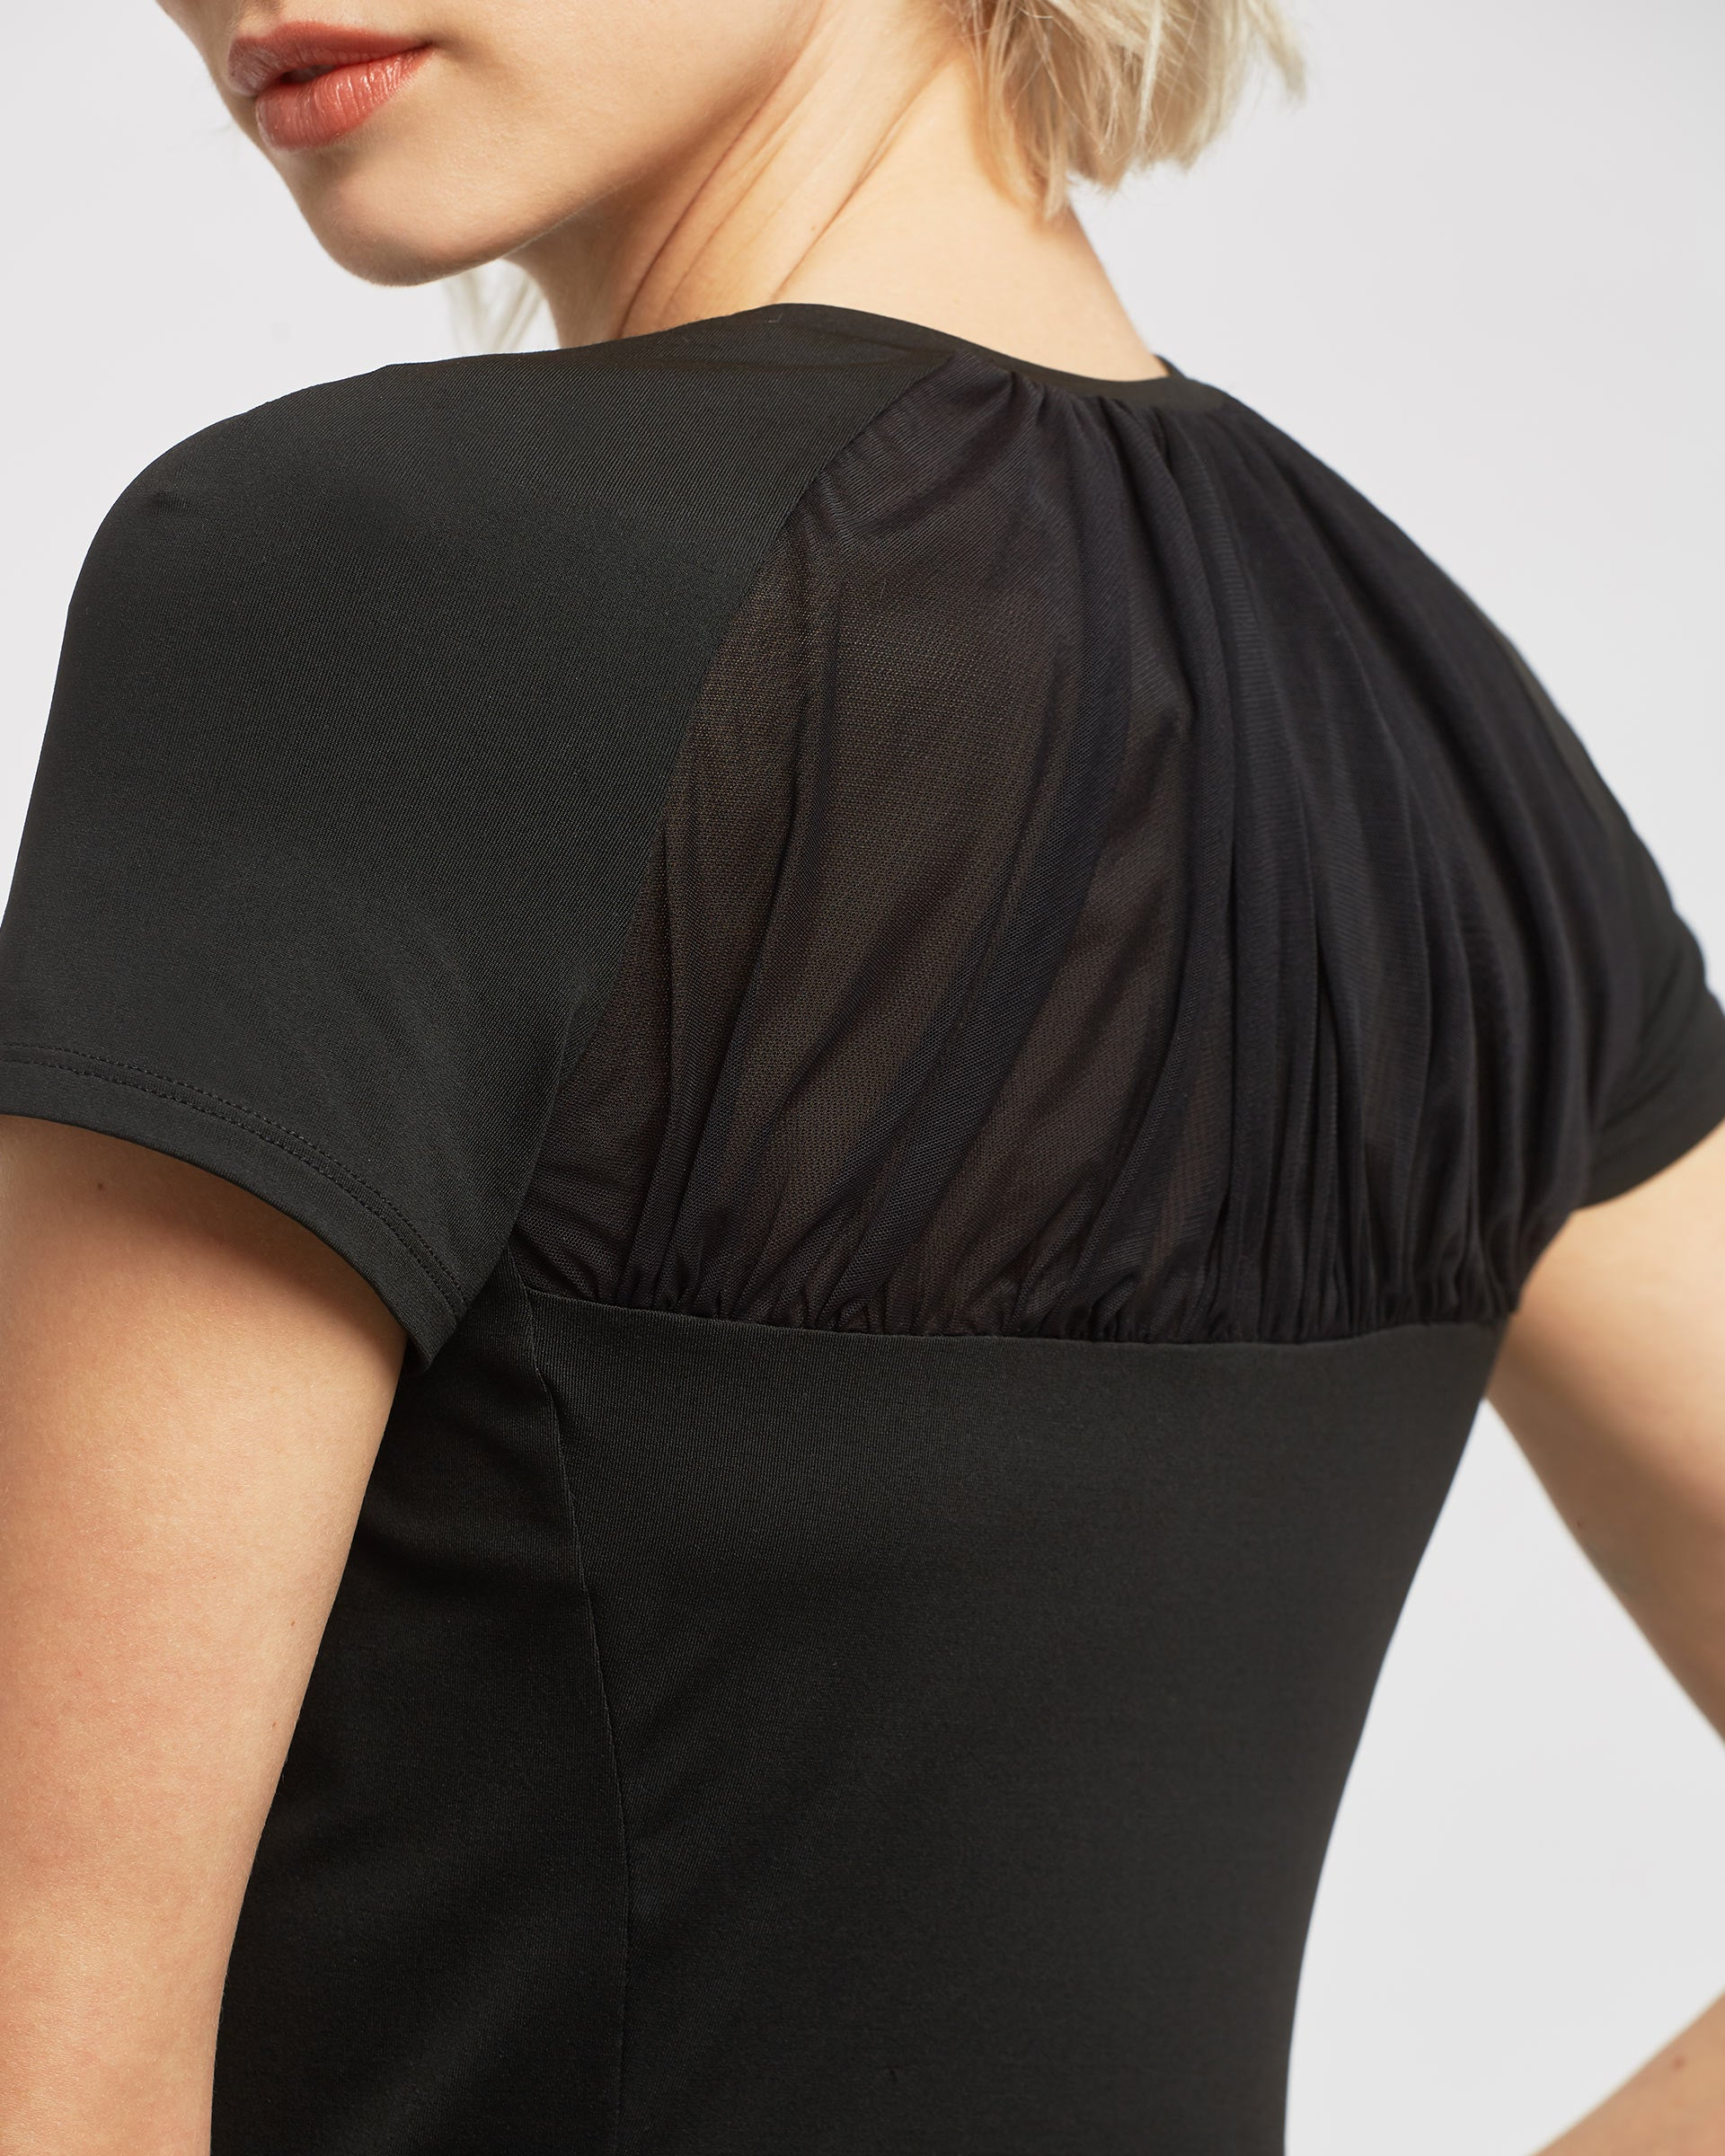 Birdie Top - Black